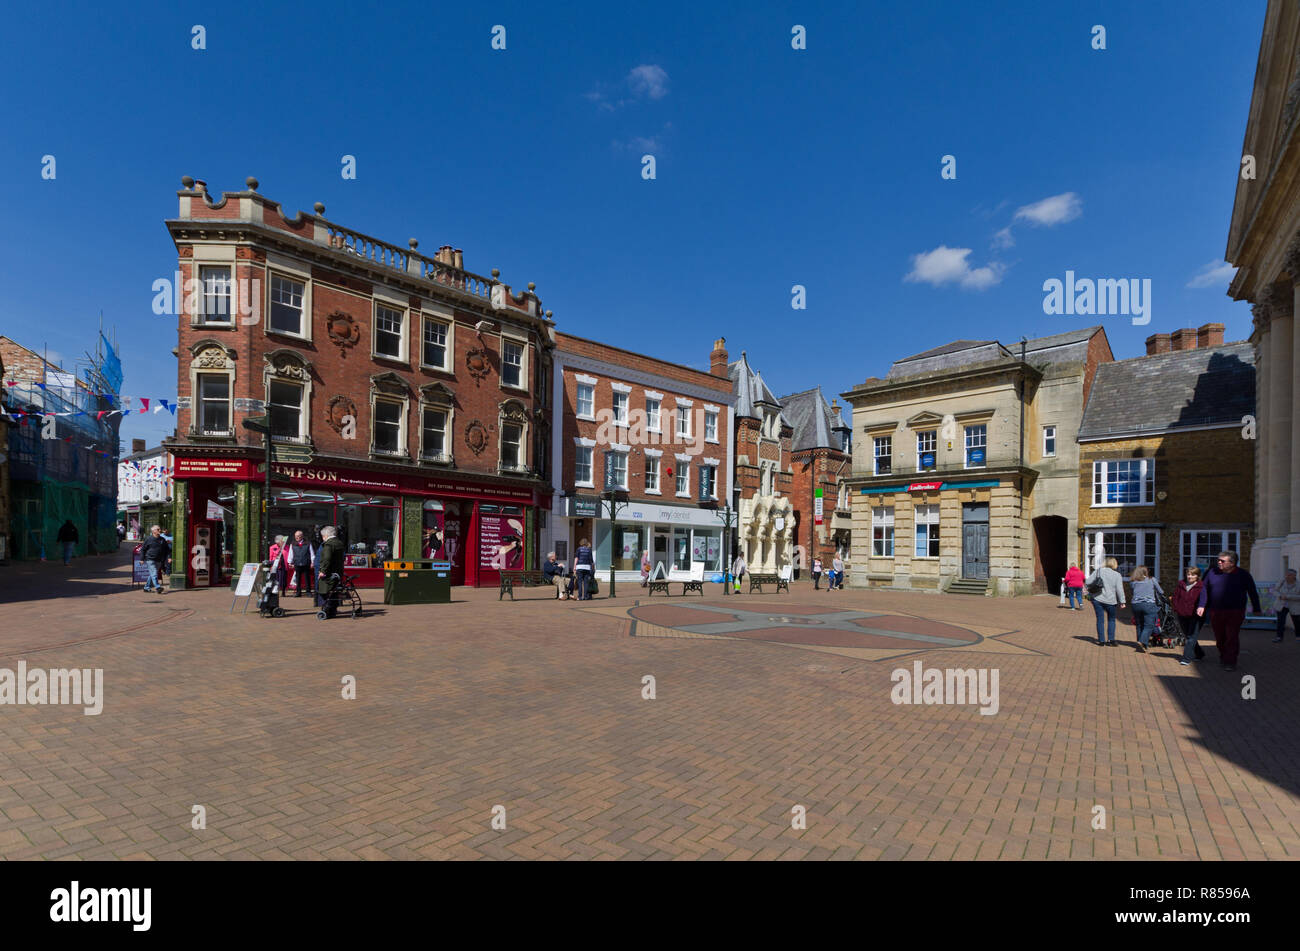 Pedestrianised Market Place area of Banbury, Oxfordshire, UK; with premises occupied by Timpsons, My Dentist and Ladbrokes. - Stock Image